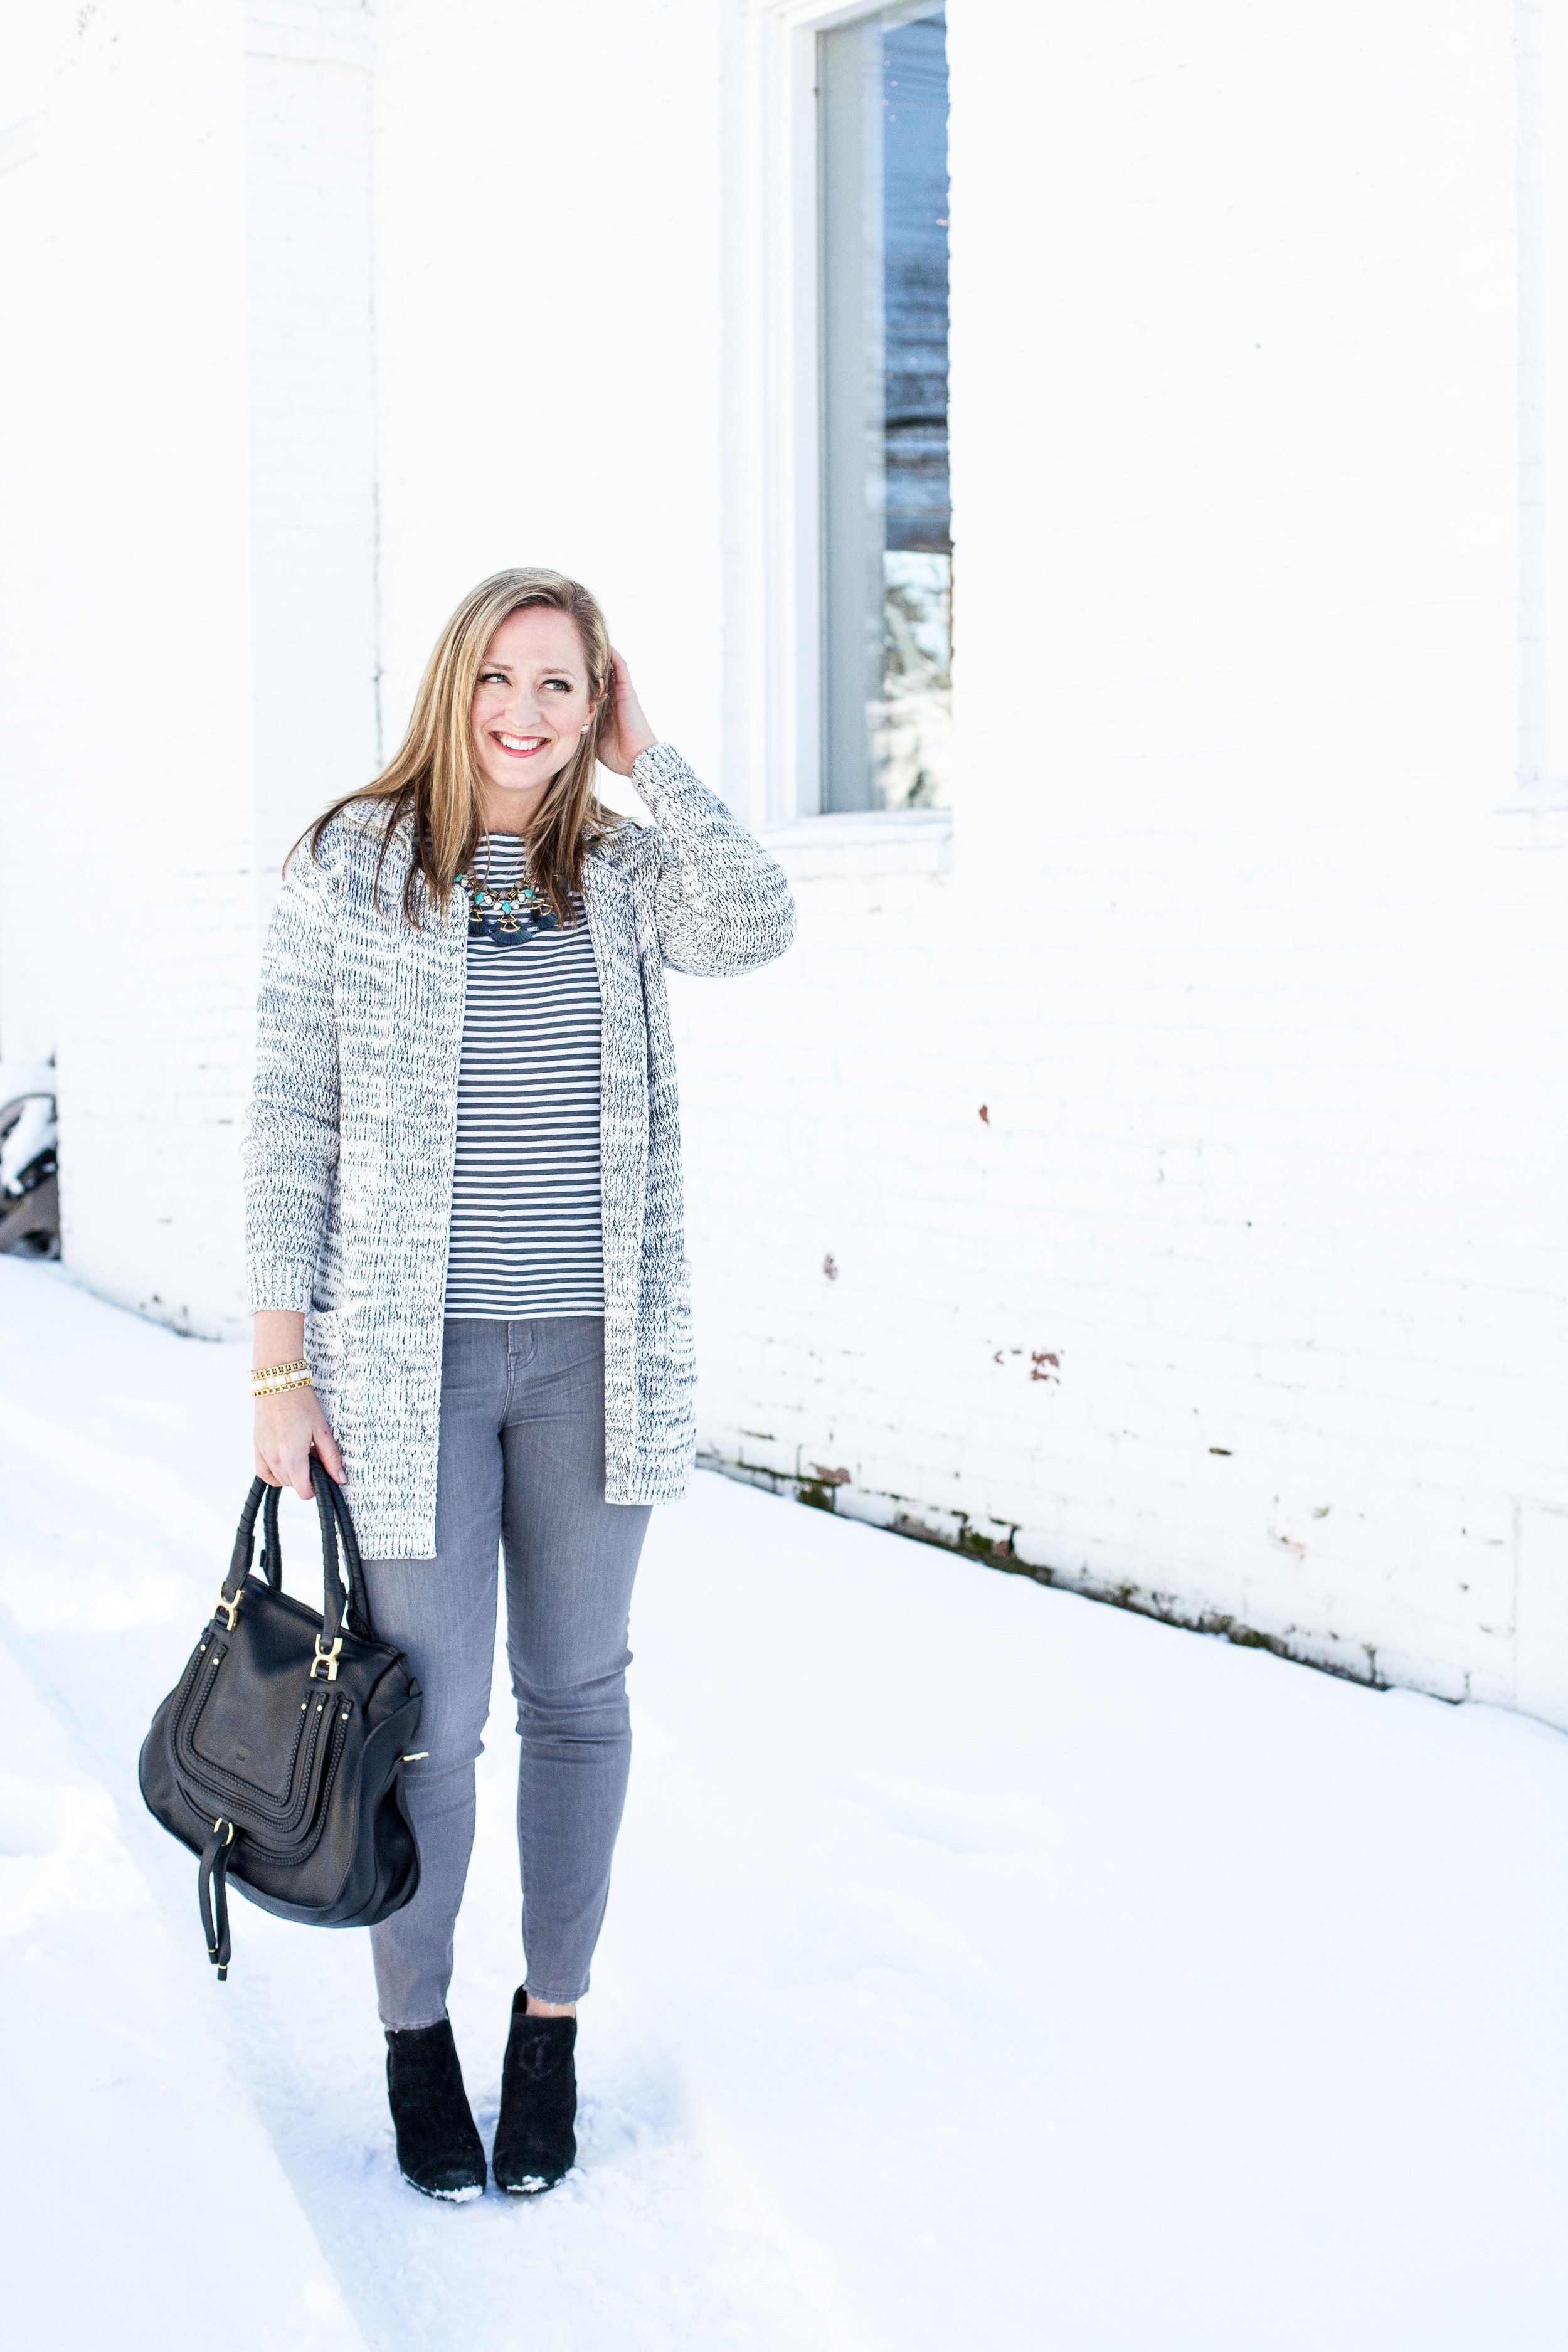 kate_davis_jackie_blog_1.24.16_0133.jpg